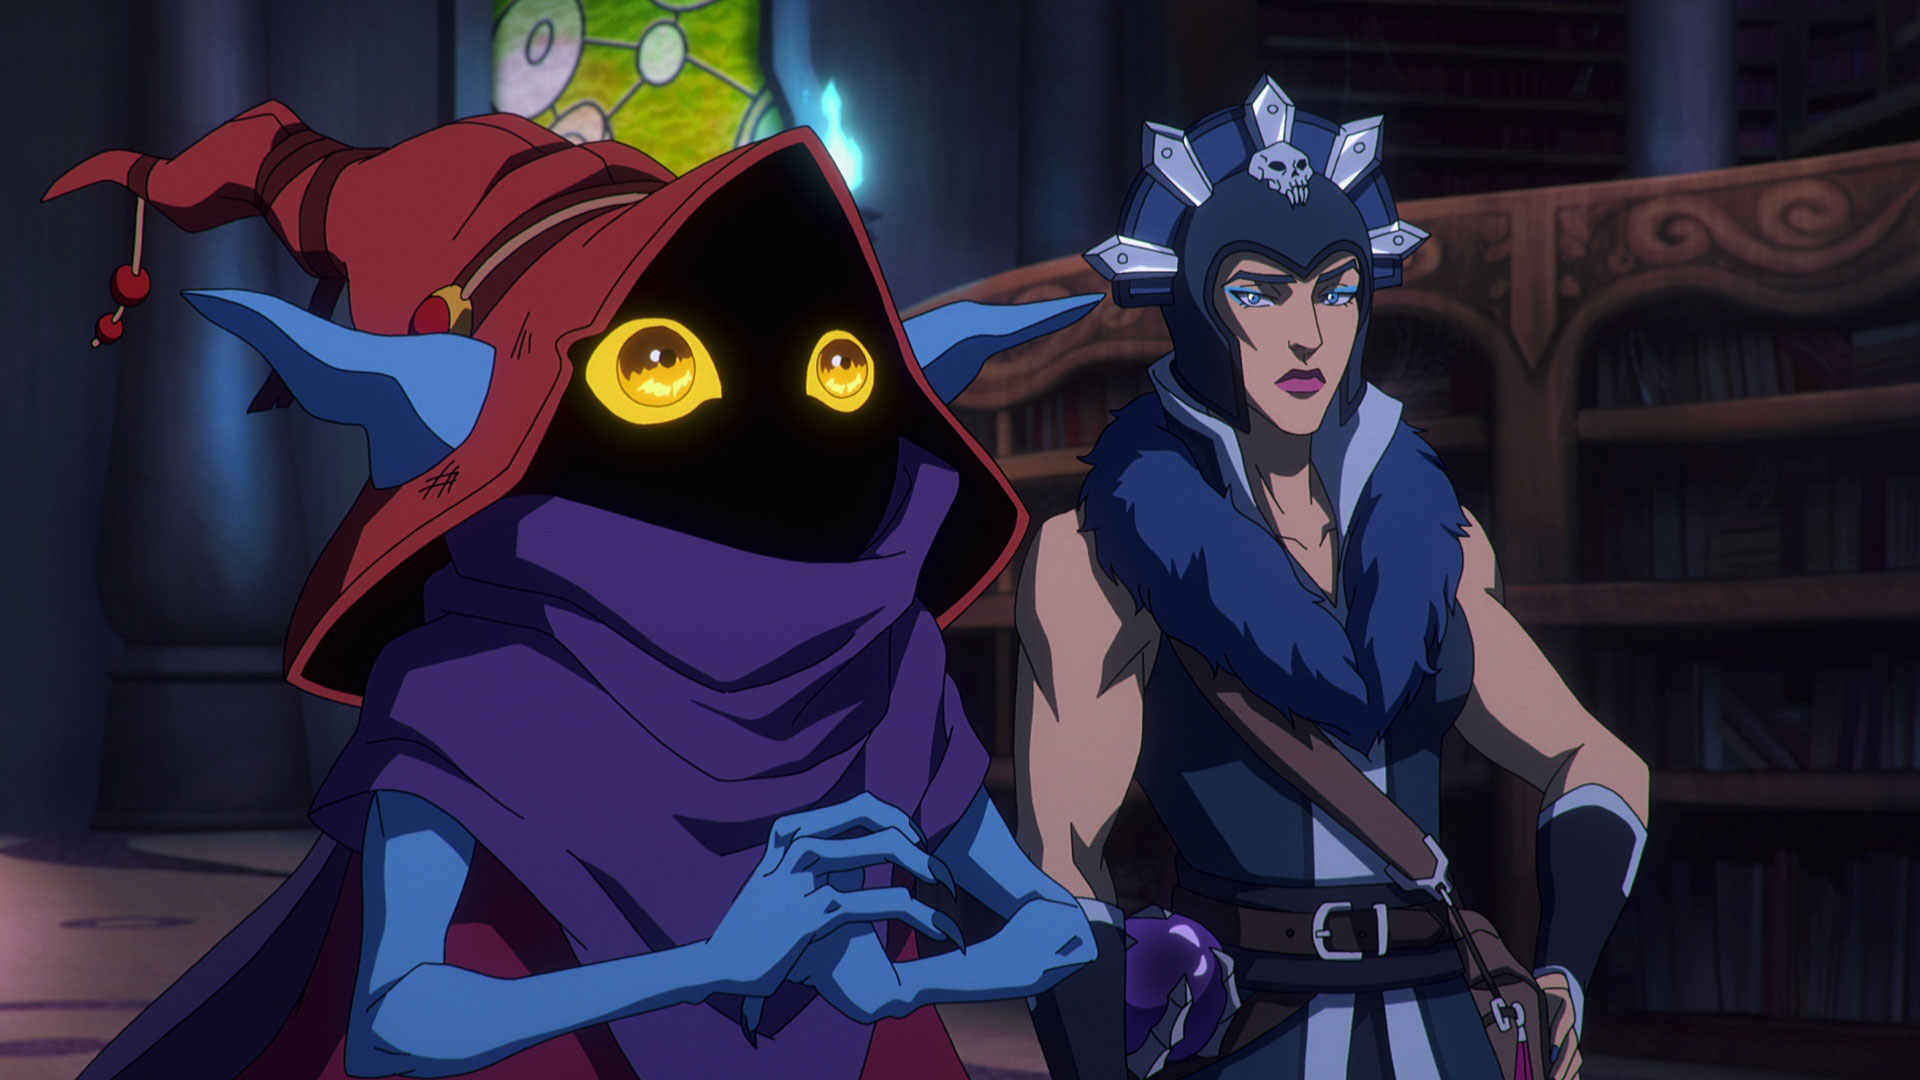 Orko und Evil-Lyn in der Animationsserie Masters of the Universe: Revelation